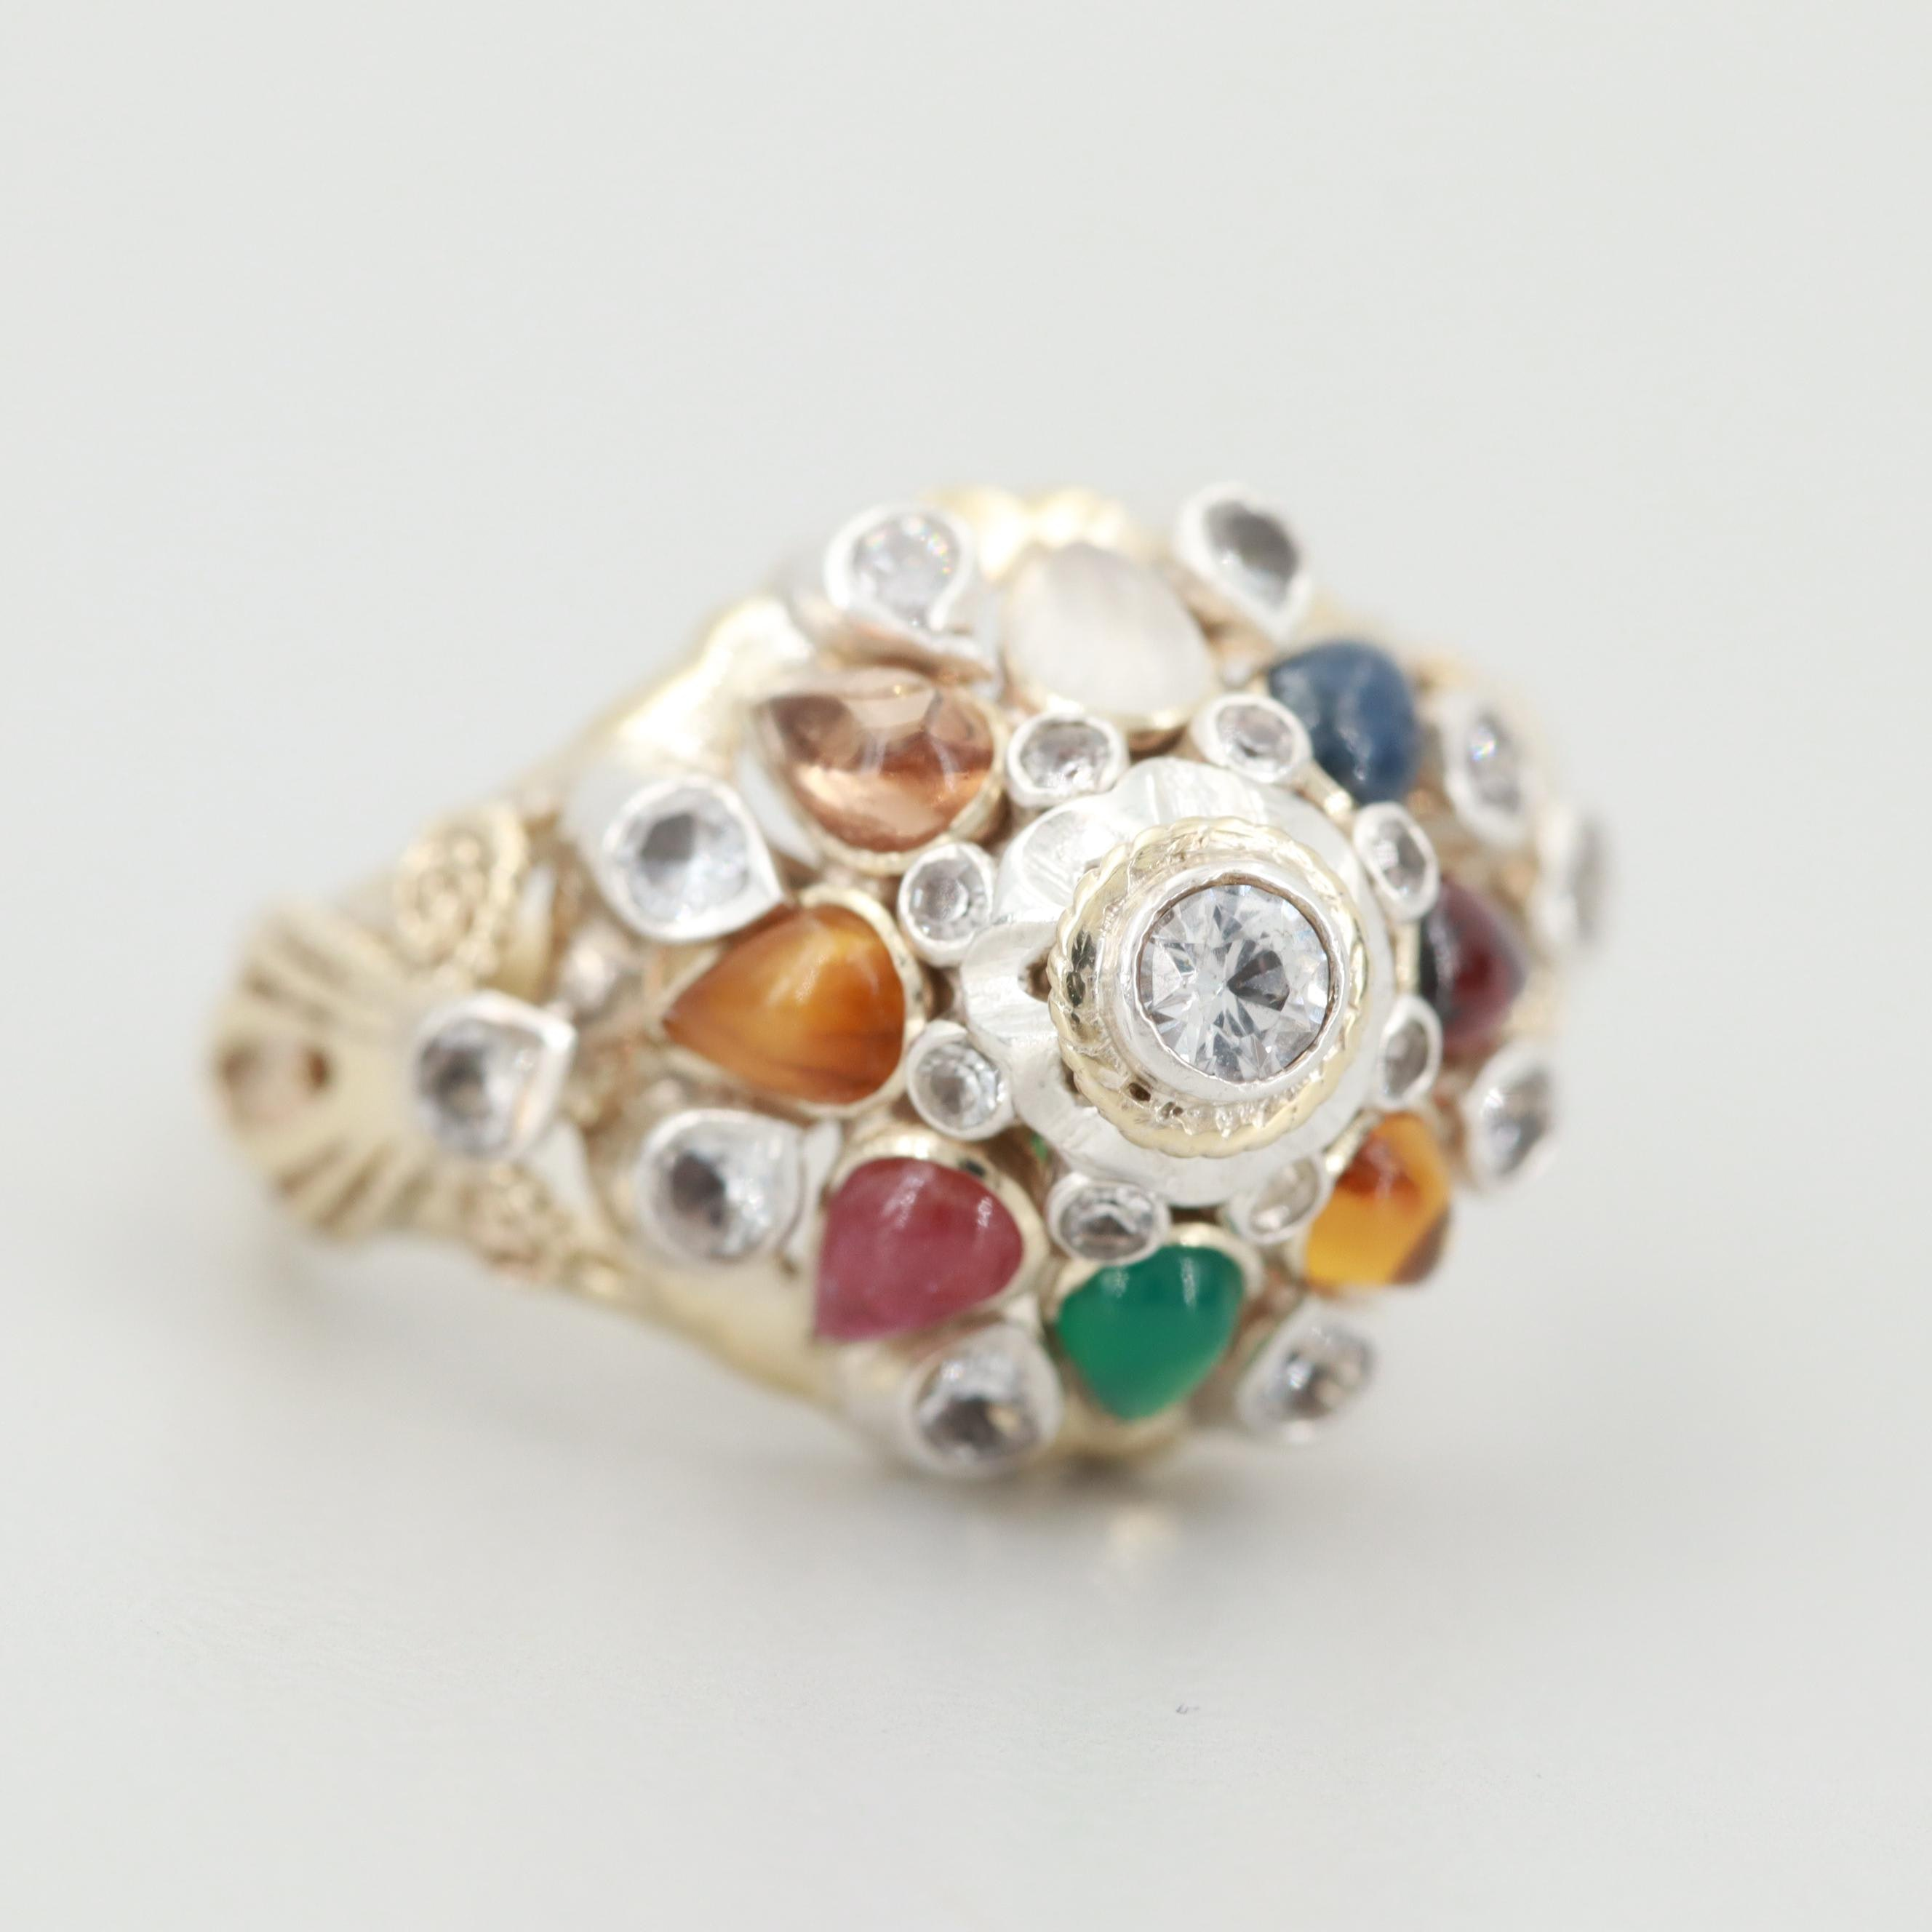 800 Silver and 9K Yellow Gold Synthetic White Spinel and Garnet Ring